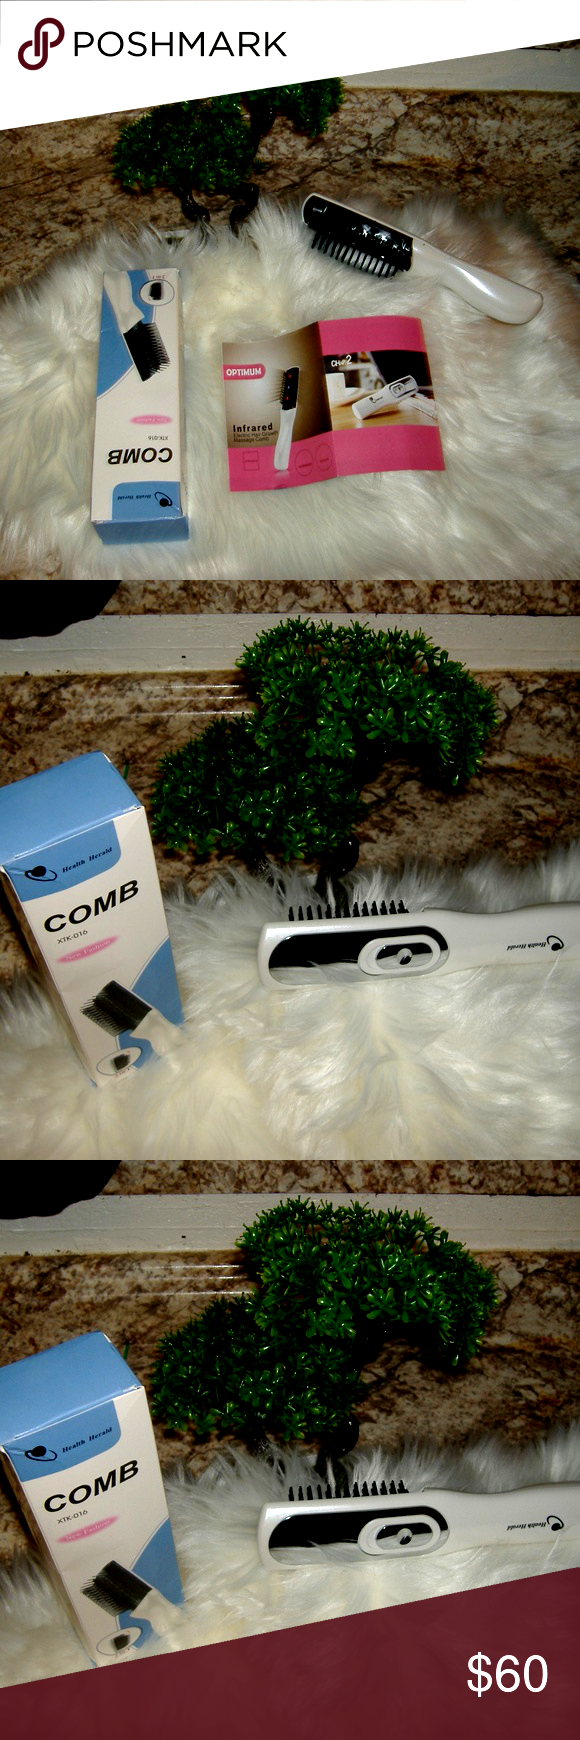 Supplement for Hair Growth} and Professional Hair Growth Laser Comb FDA 5 STAR,S Brand New Hair Growth Laser Comb - Advanced FDA Cleared Hair Loss Treatment For Women & Men With Thinning Hair - Superior Regrowth Therapy Combs To Grow Thicker & Fuller Hair Red Light Stimulate hair follicles for thicker & stronger hair 6 minutes a day New Year New Hair. XTK-016 New Fashions Other